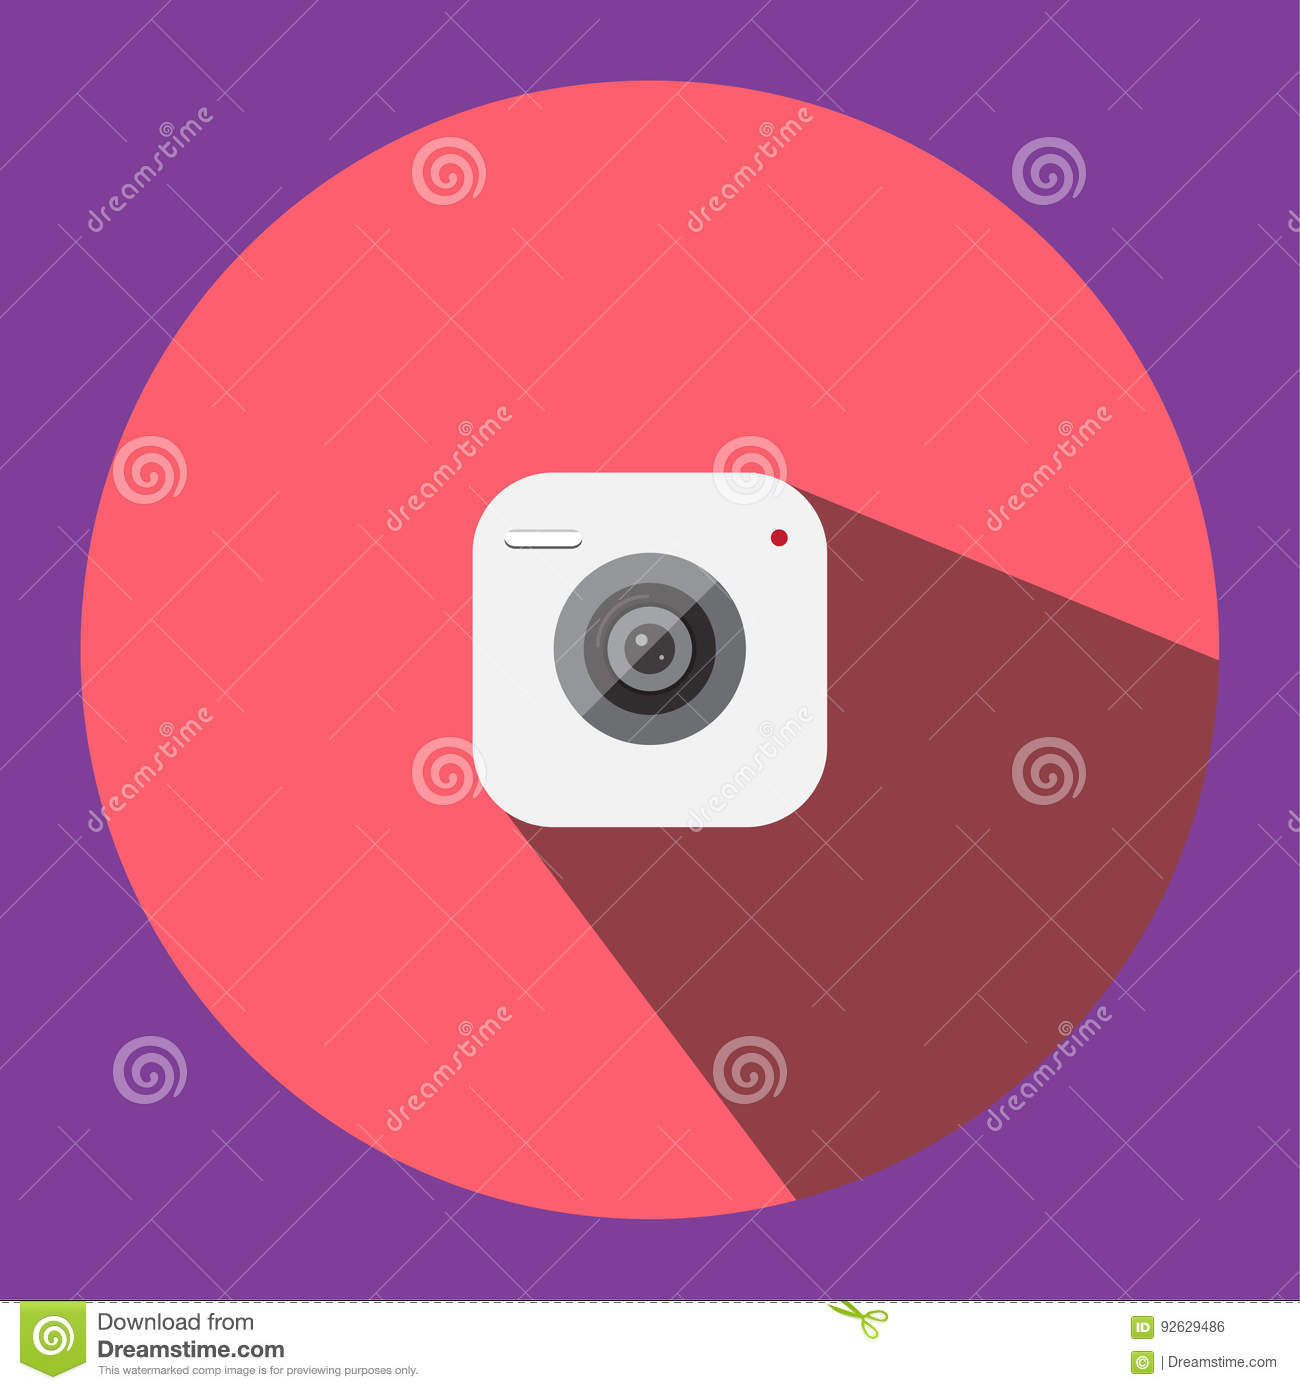 The illustrated image is a camera clip image icon can be used in various media applications.